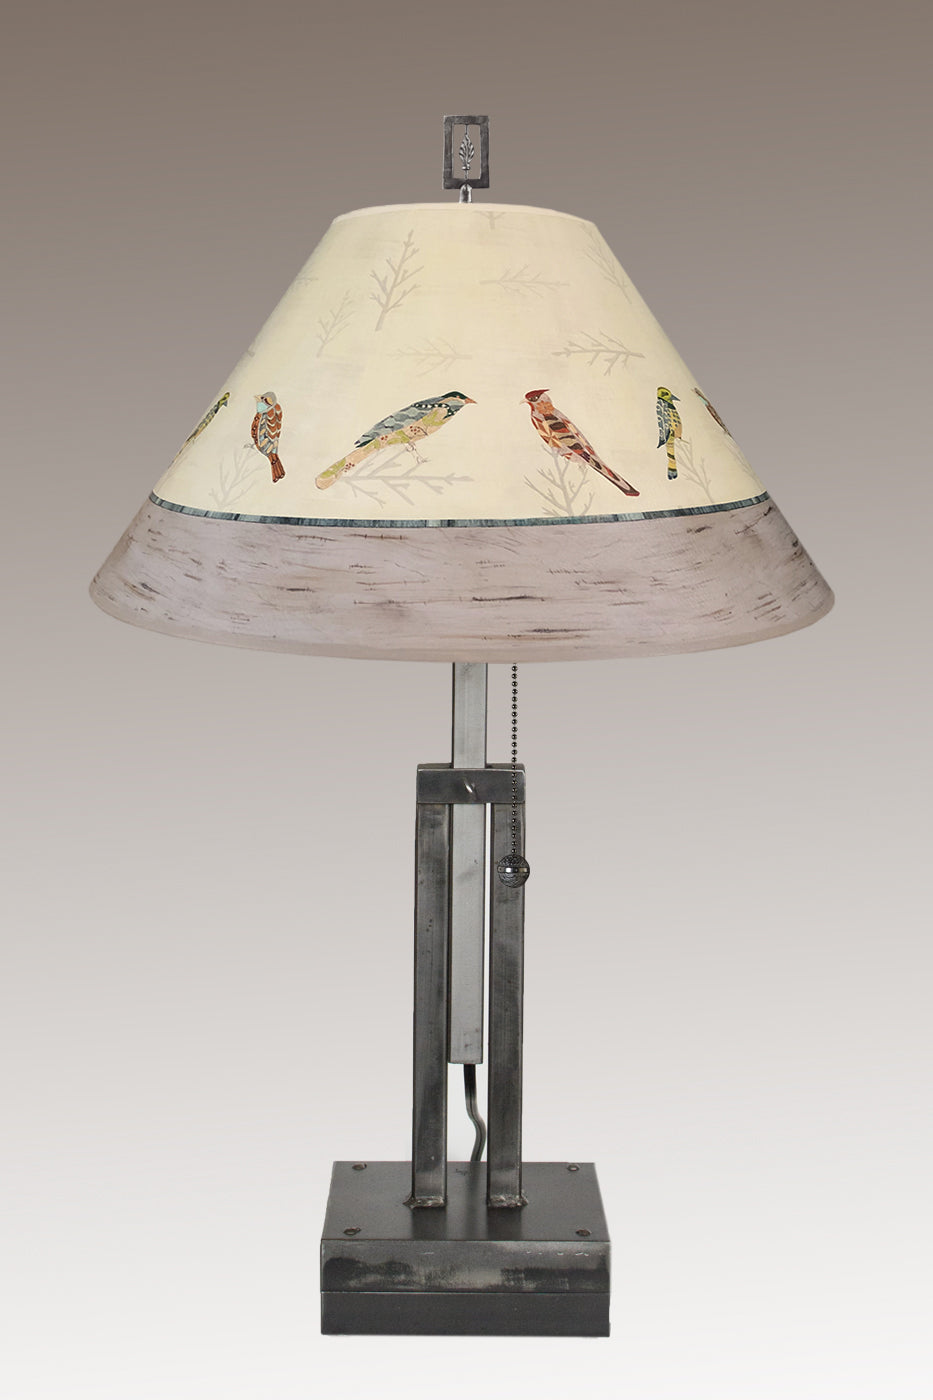 Adjustable-Height Steel Table Lamp with Large Conical Shade in Bird Friends